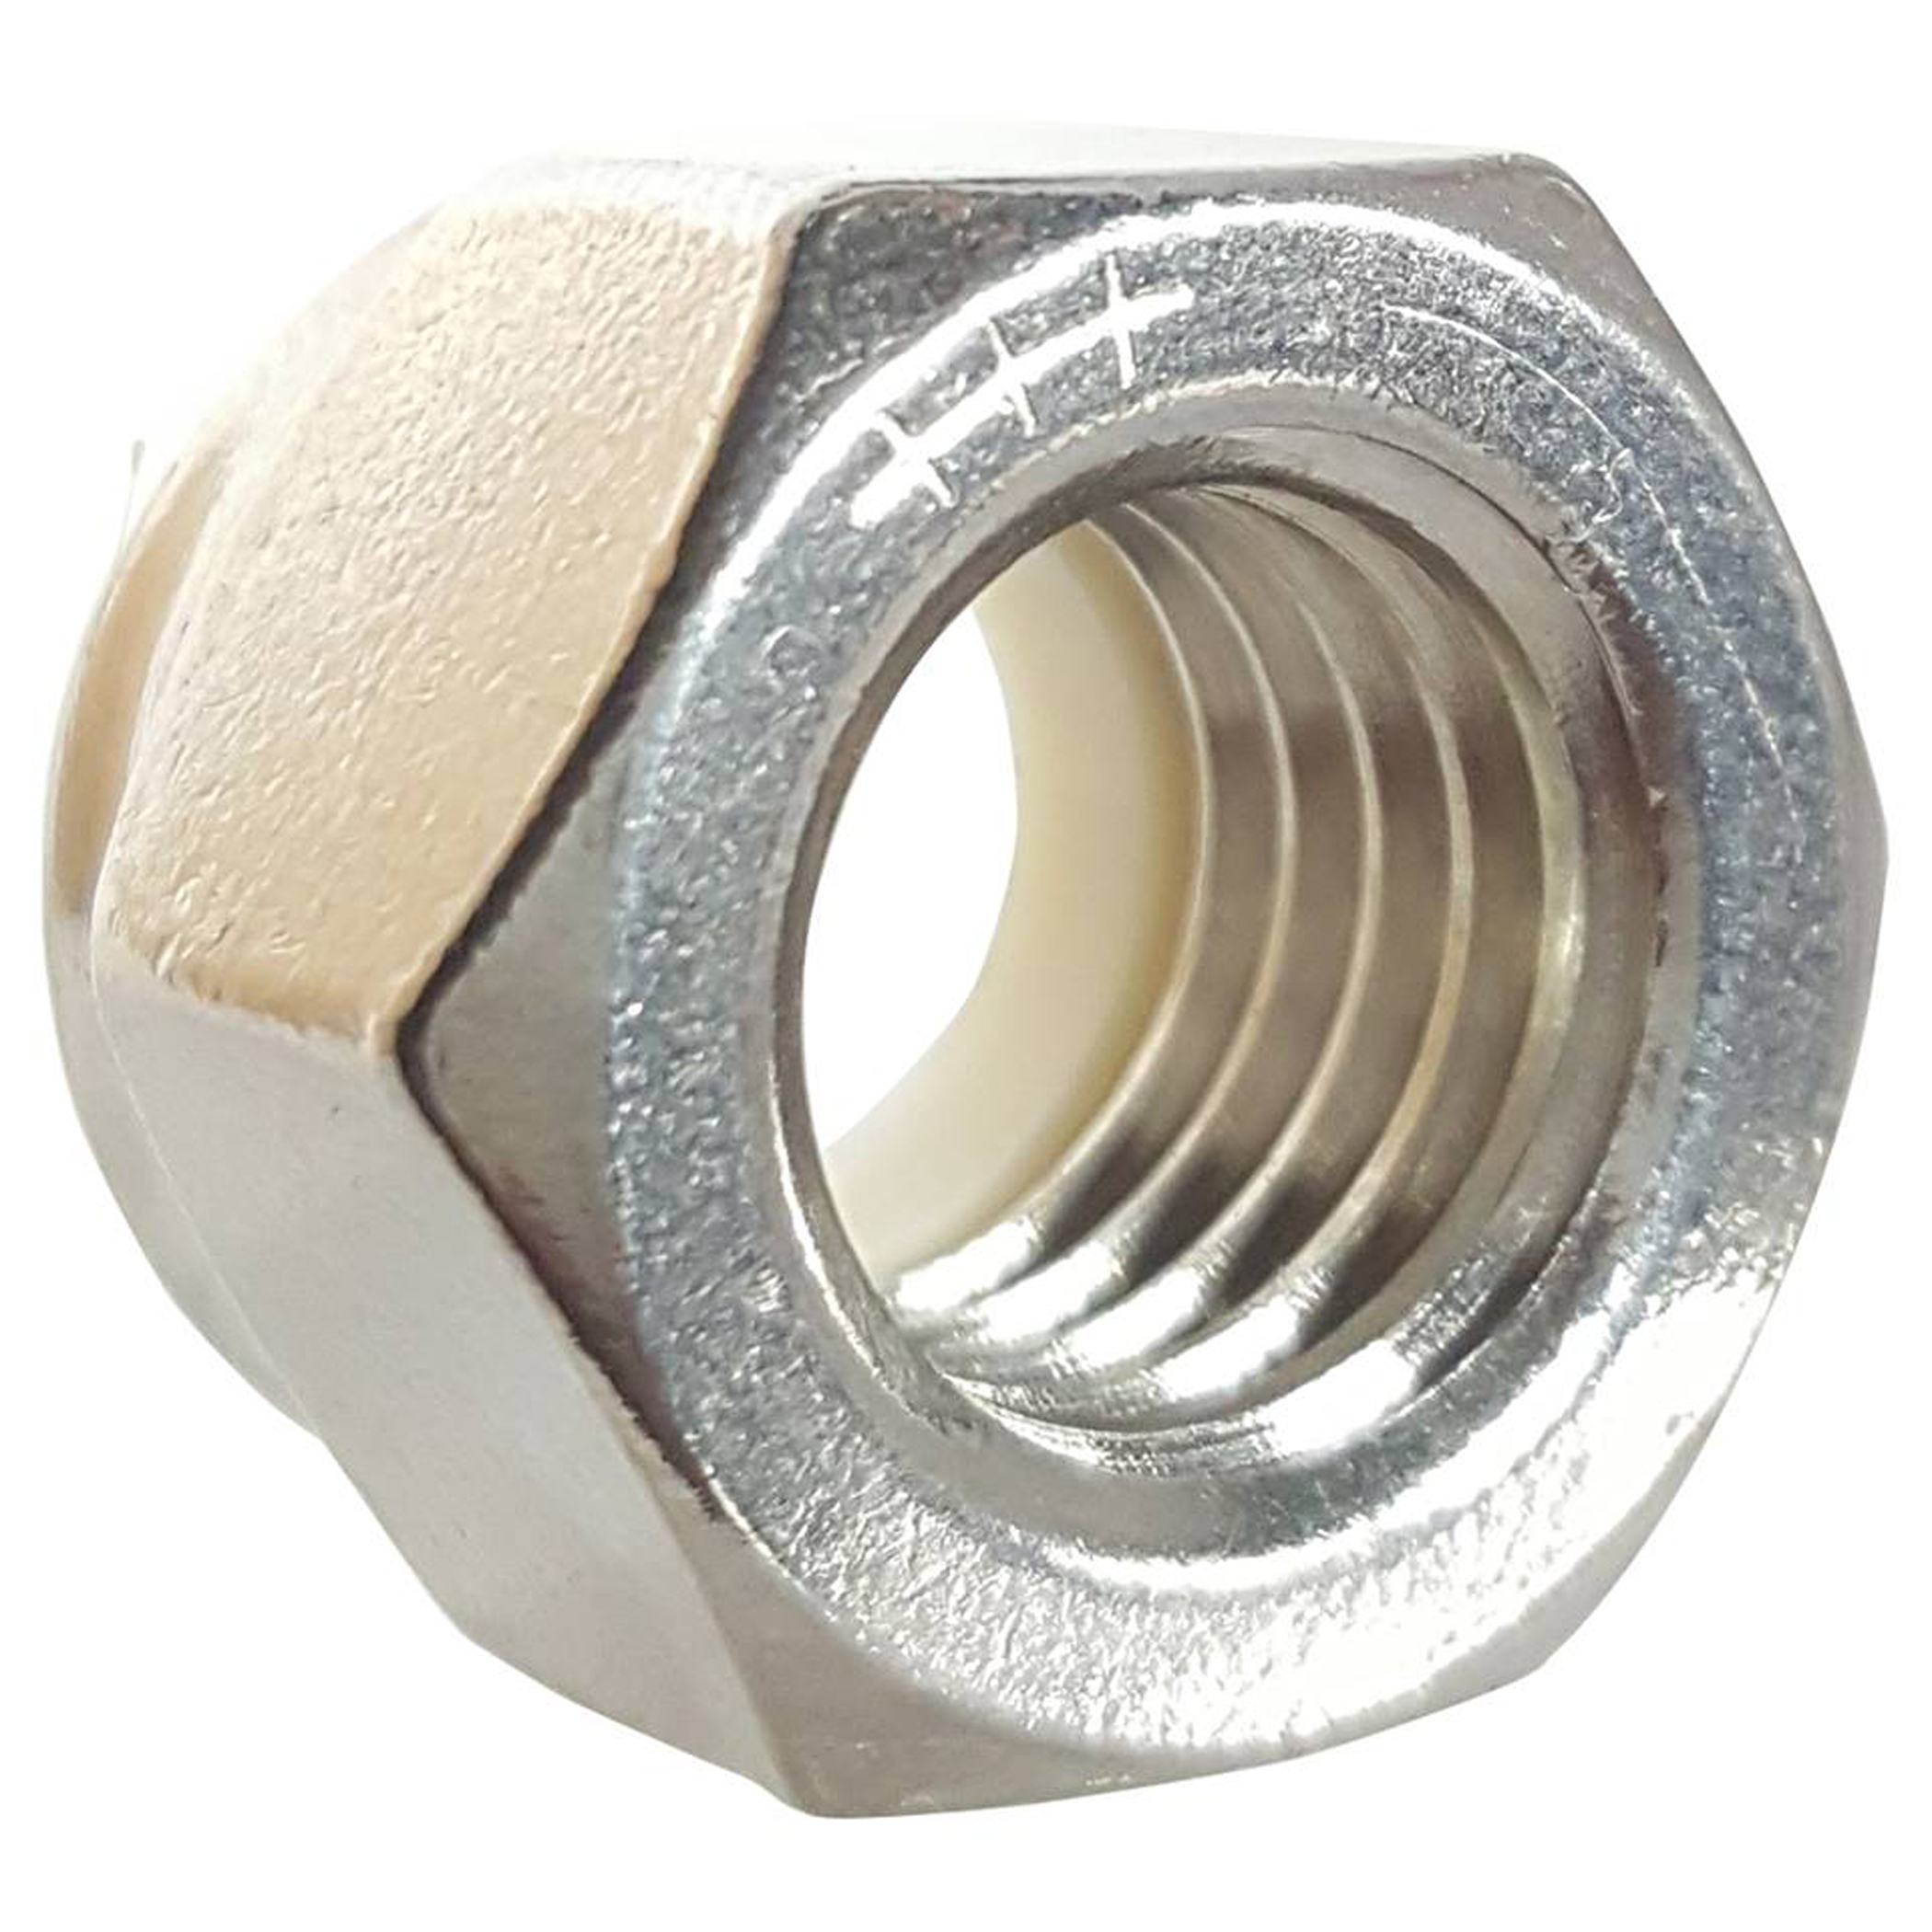 Stainless Steel Nylon Insert Hex Lock Nuts Nylock All Sizes and Quantities